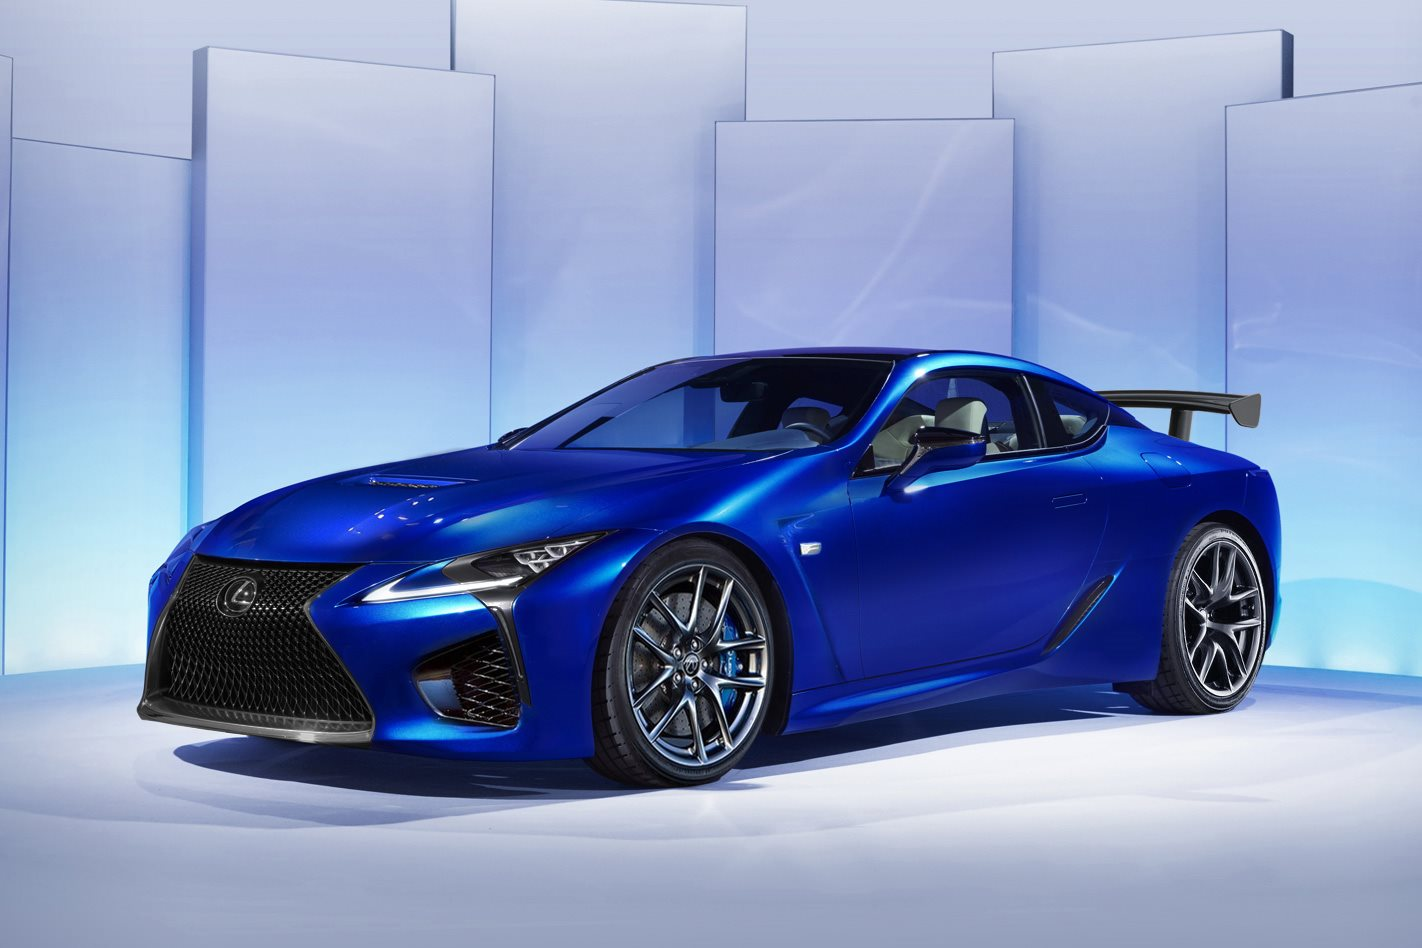 Lexus Lc F To Debut Potent New 4 0l Twin Turbo V8 In 2019